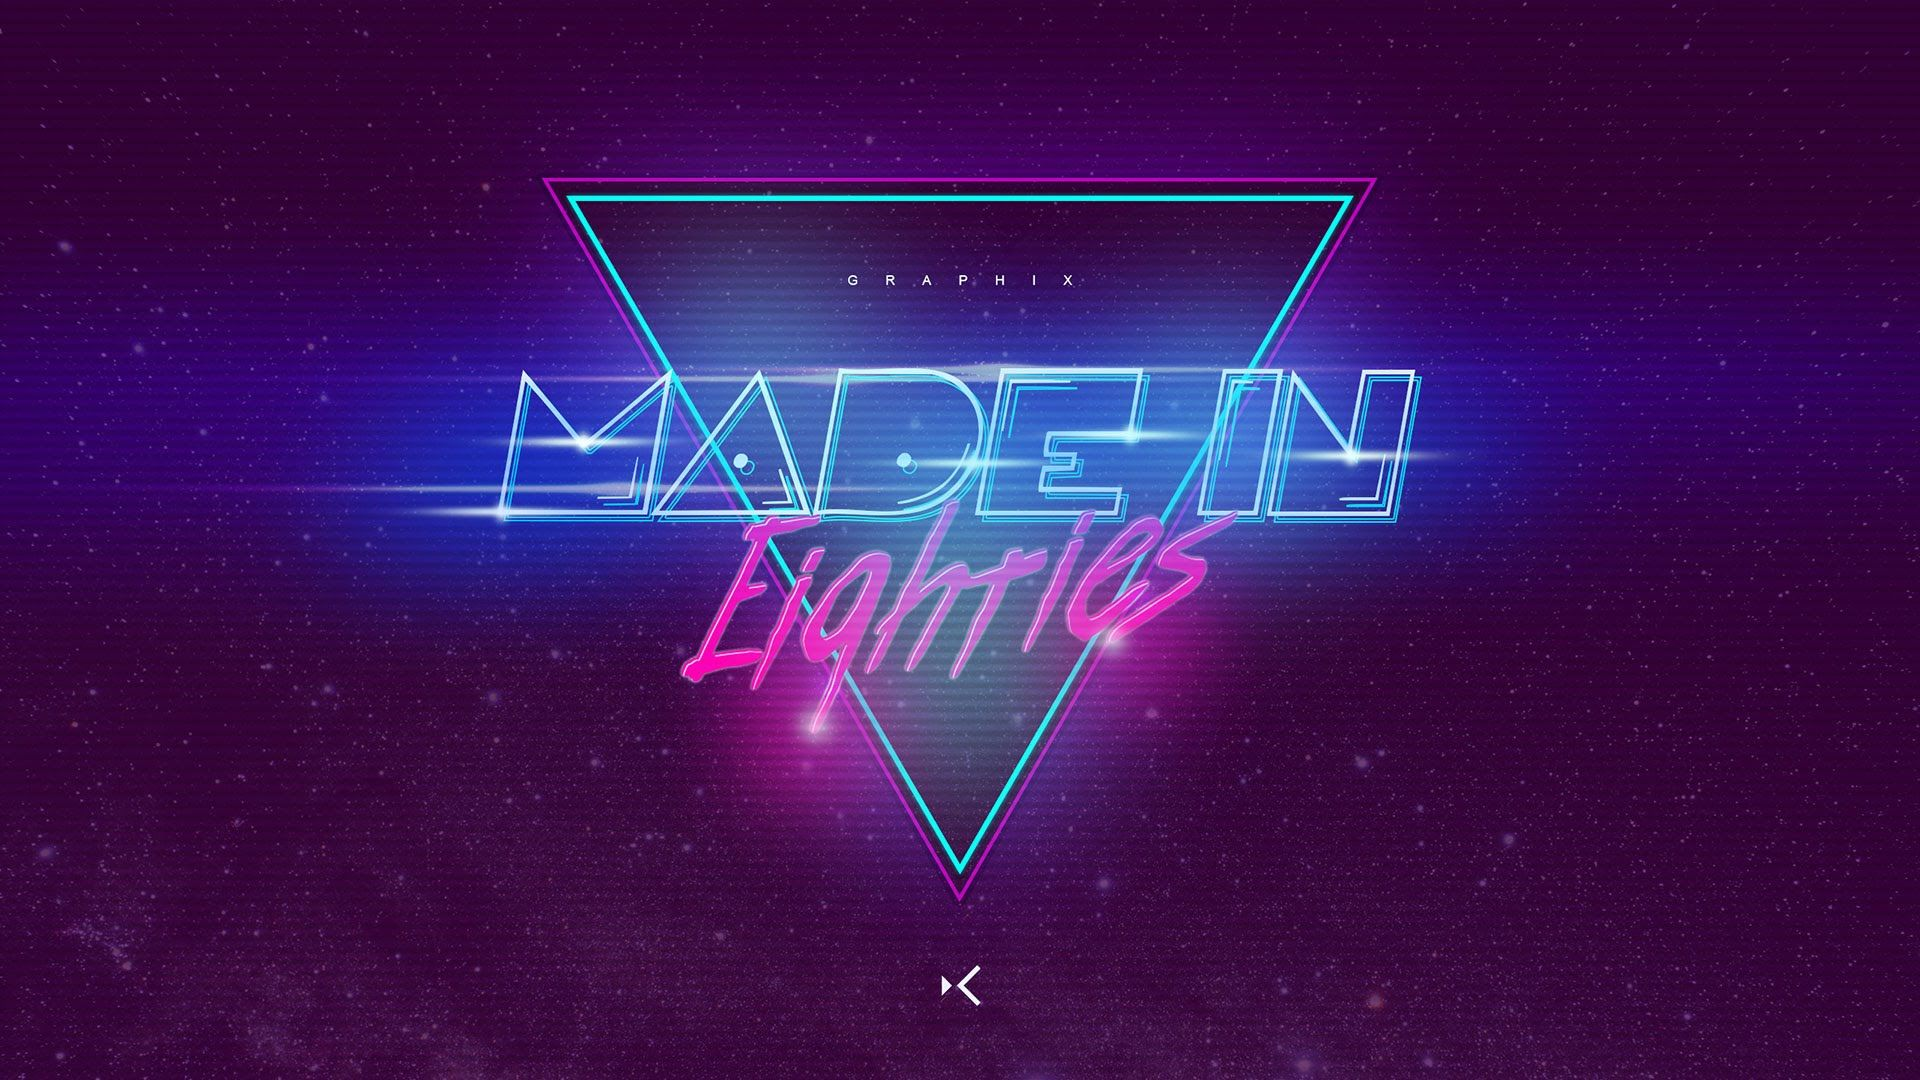 Made in 80s Wallpaper Art Speed Graphic Design Concept